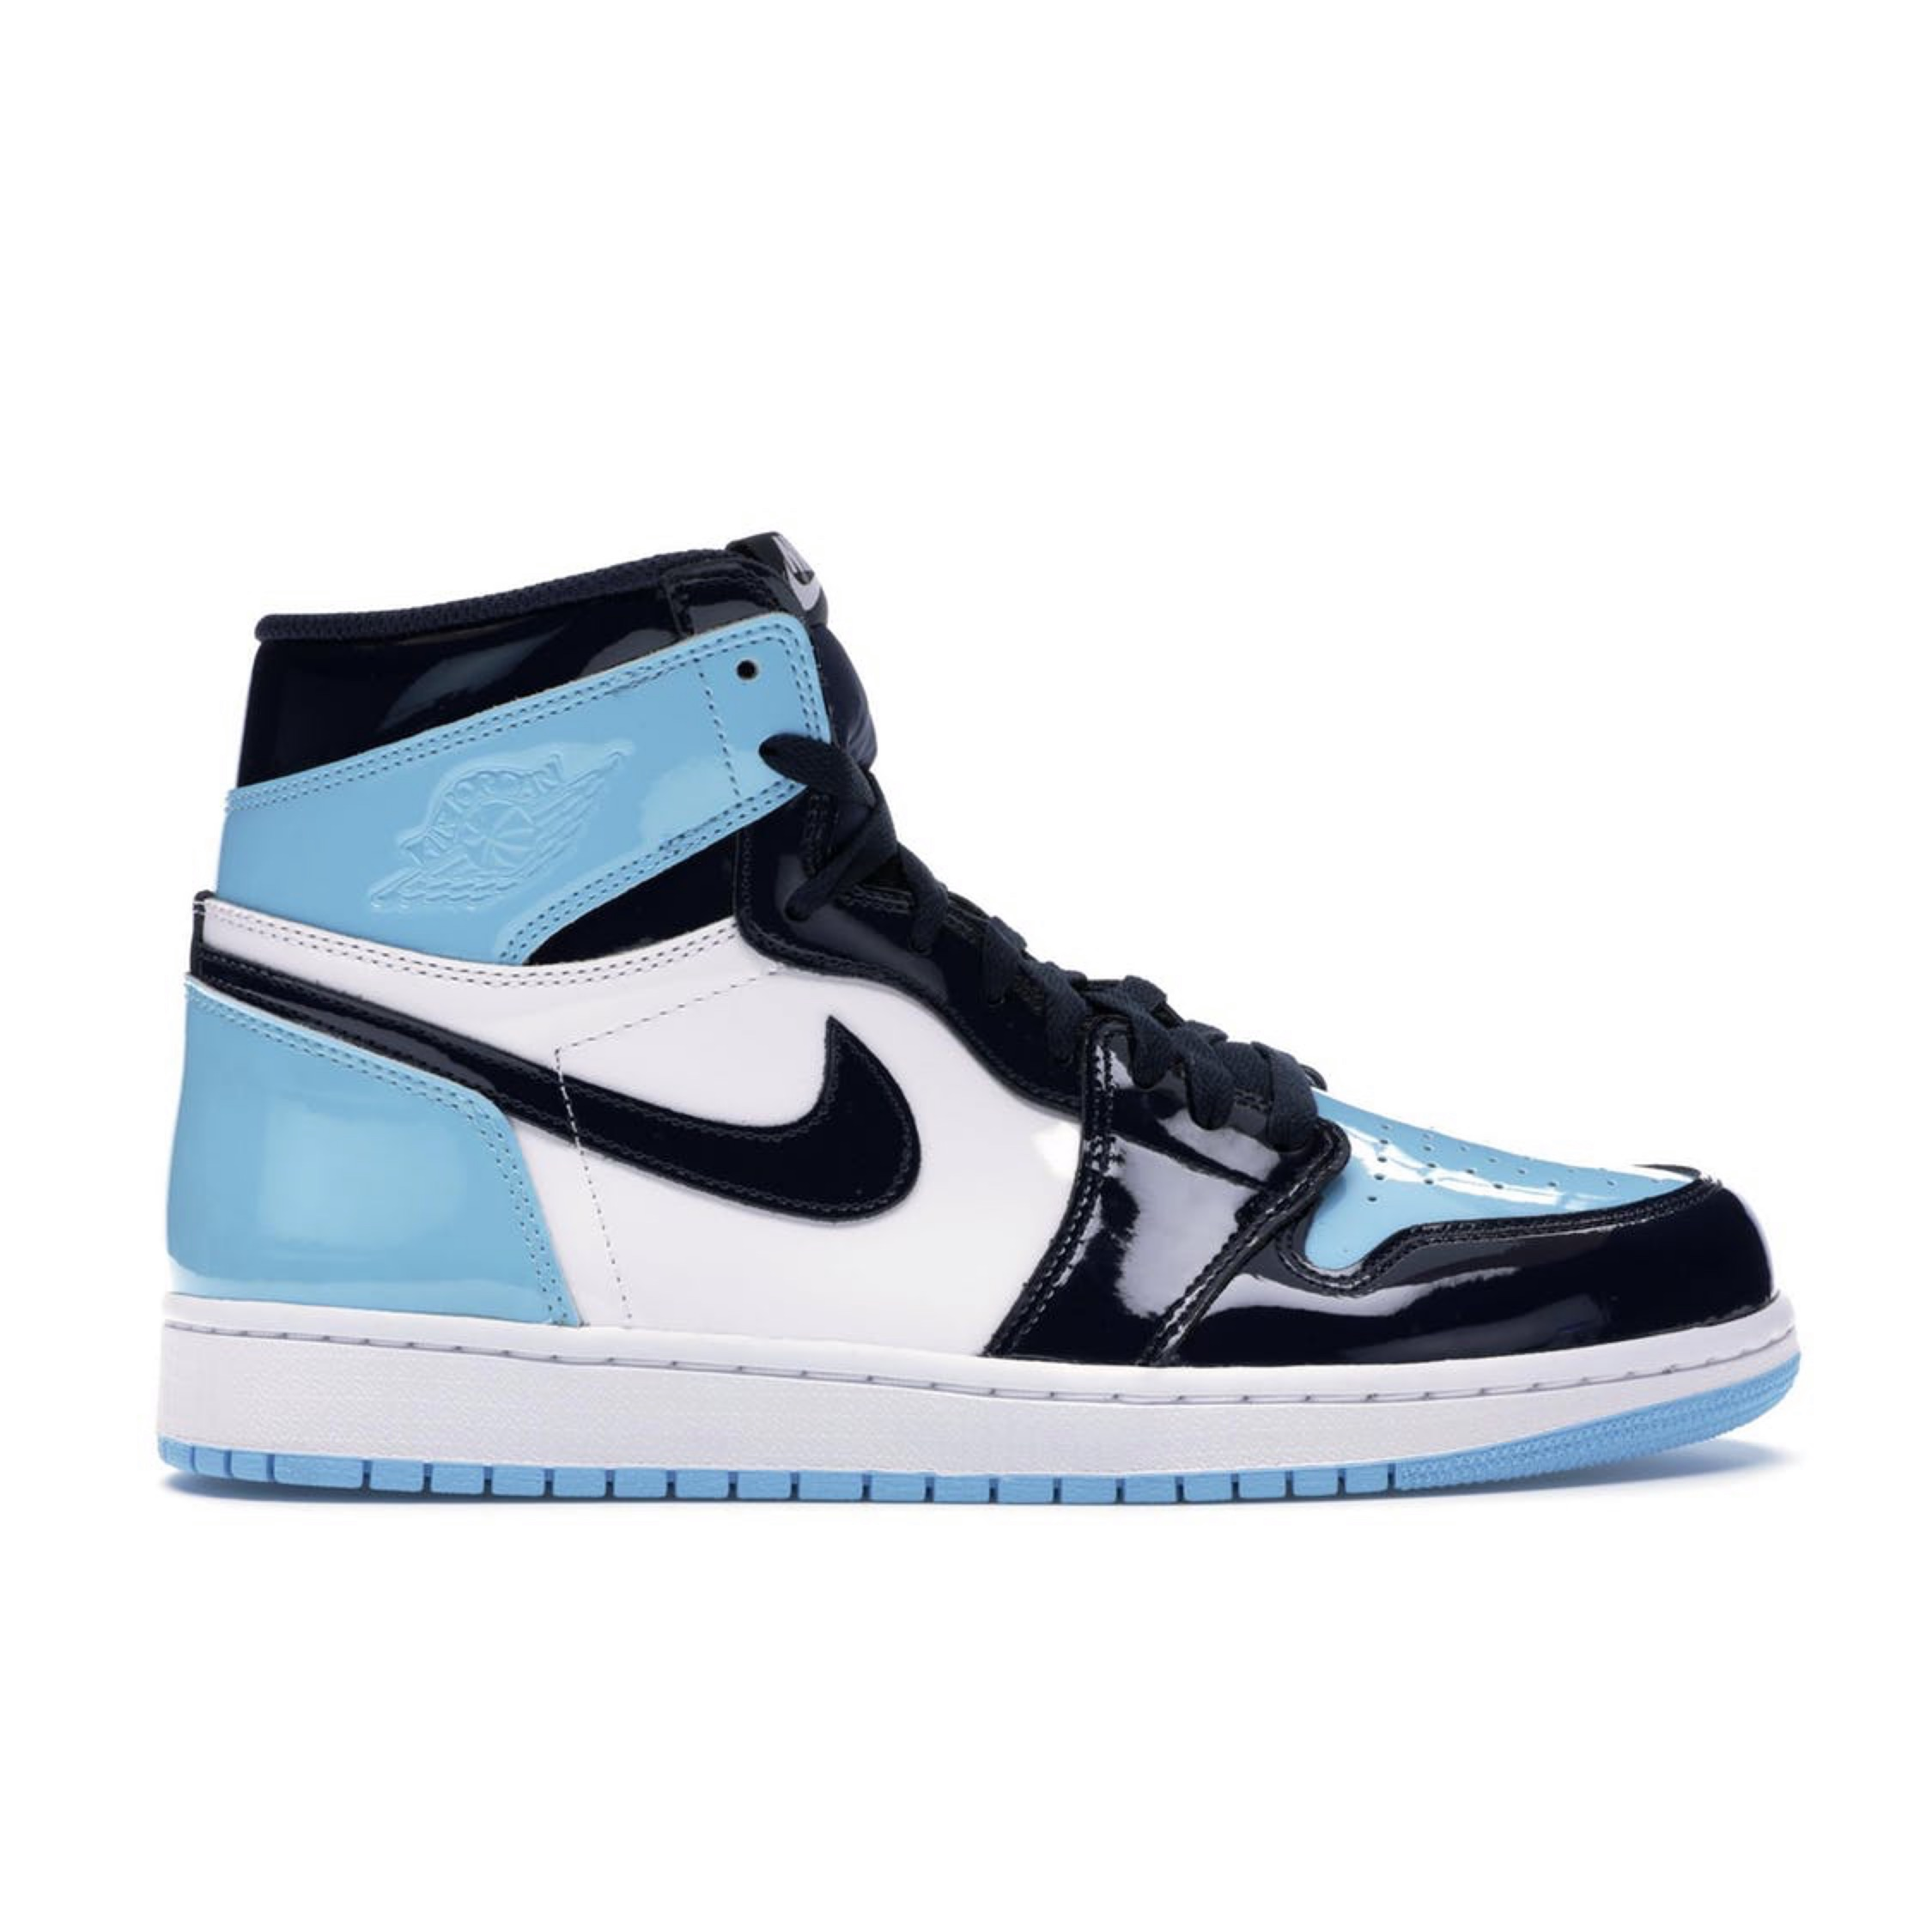 Air Jordans 1 Womens : Air Jordan Shoes | Nike Air Jordan ...